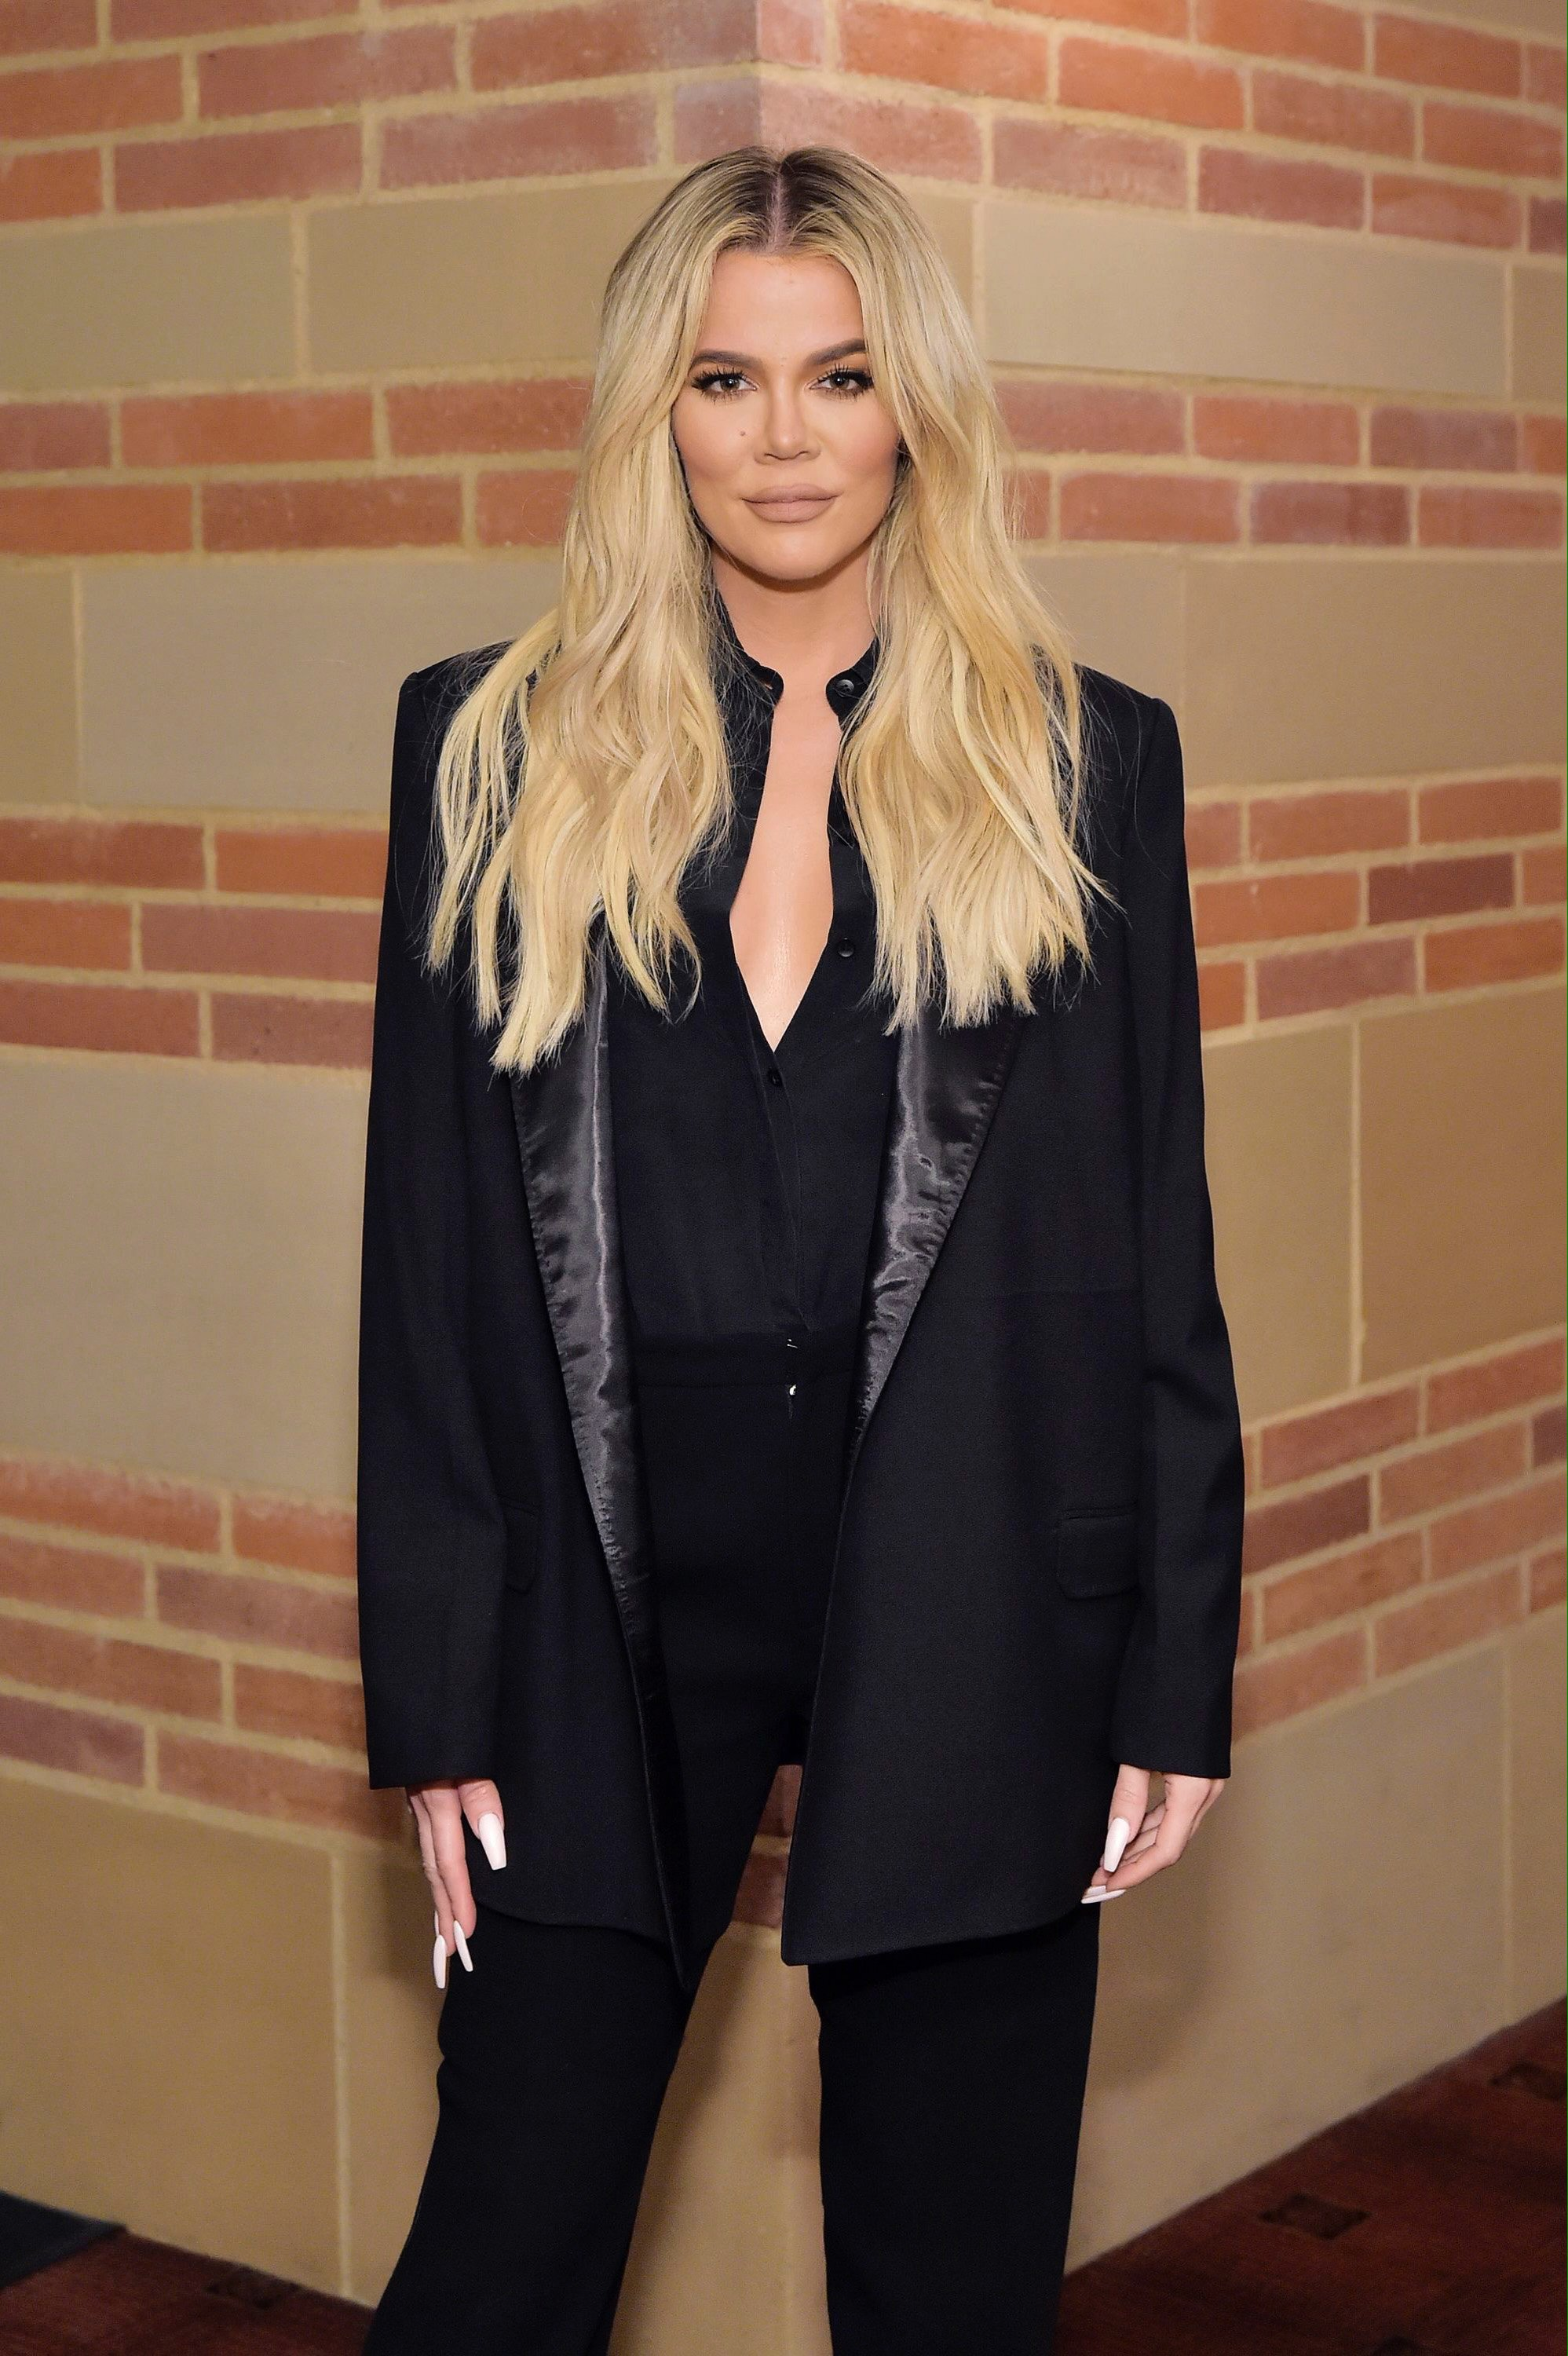 Khloe Kardashian at The Promise Armenian Institute event at UCLA, 2019 in Los Angeles, California | Source: Getty Images